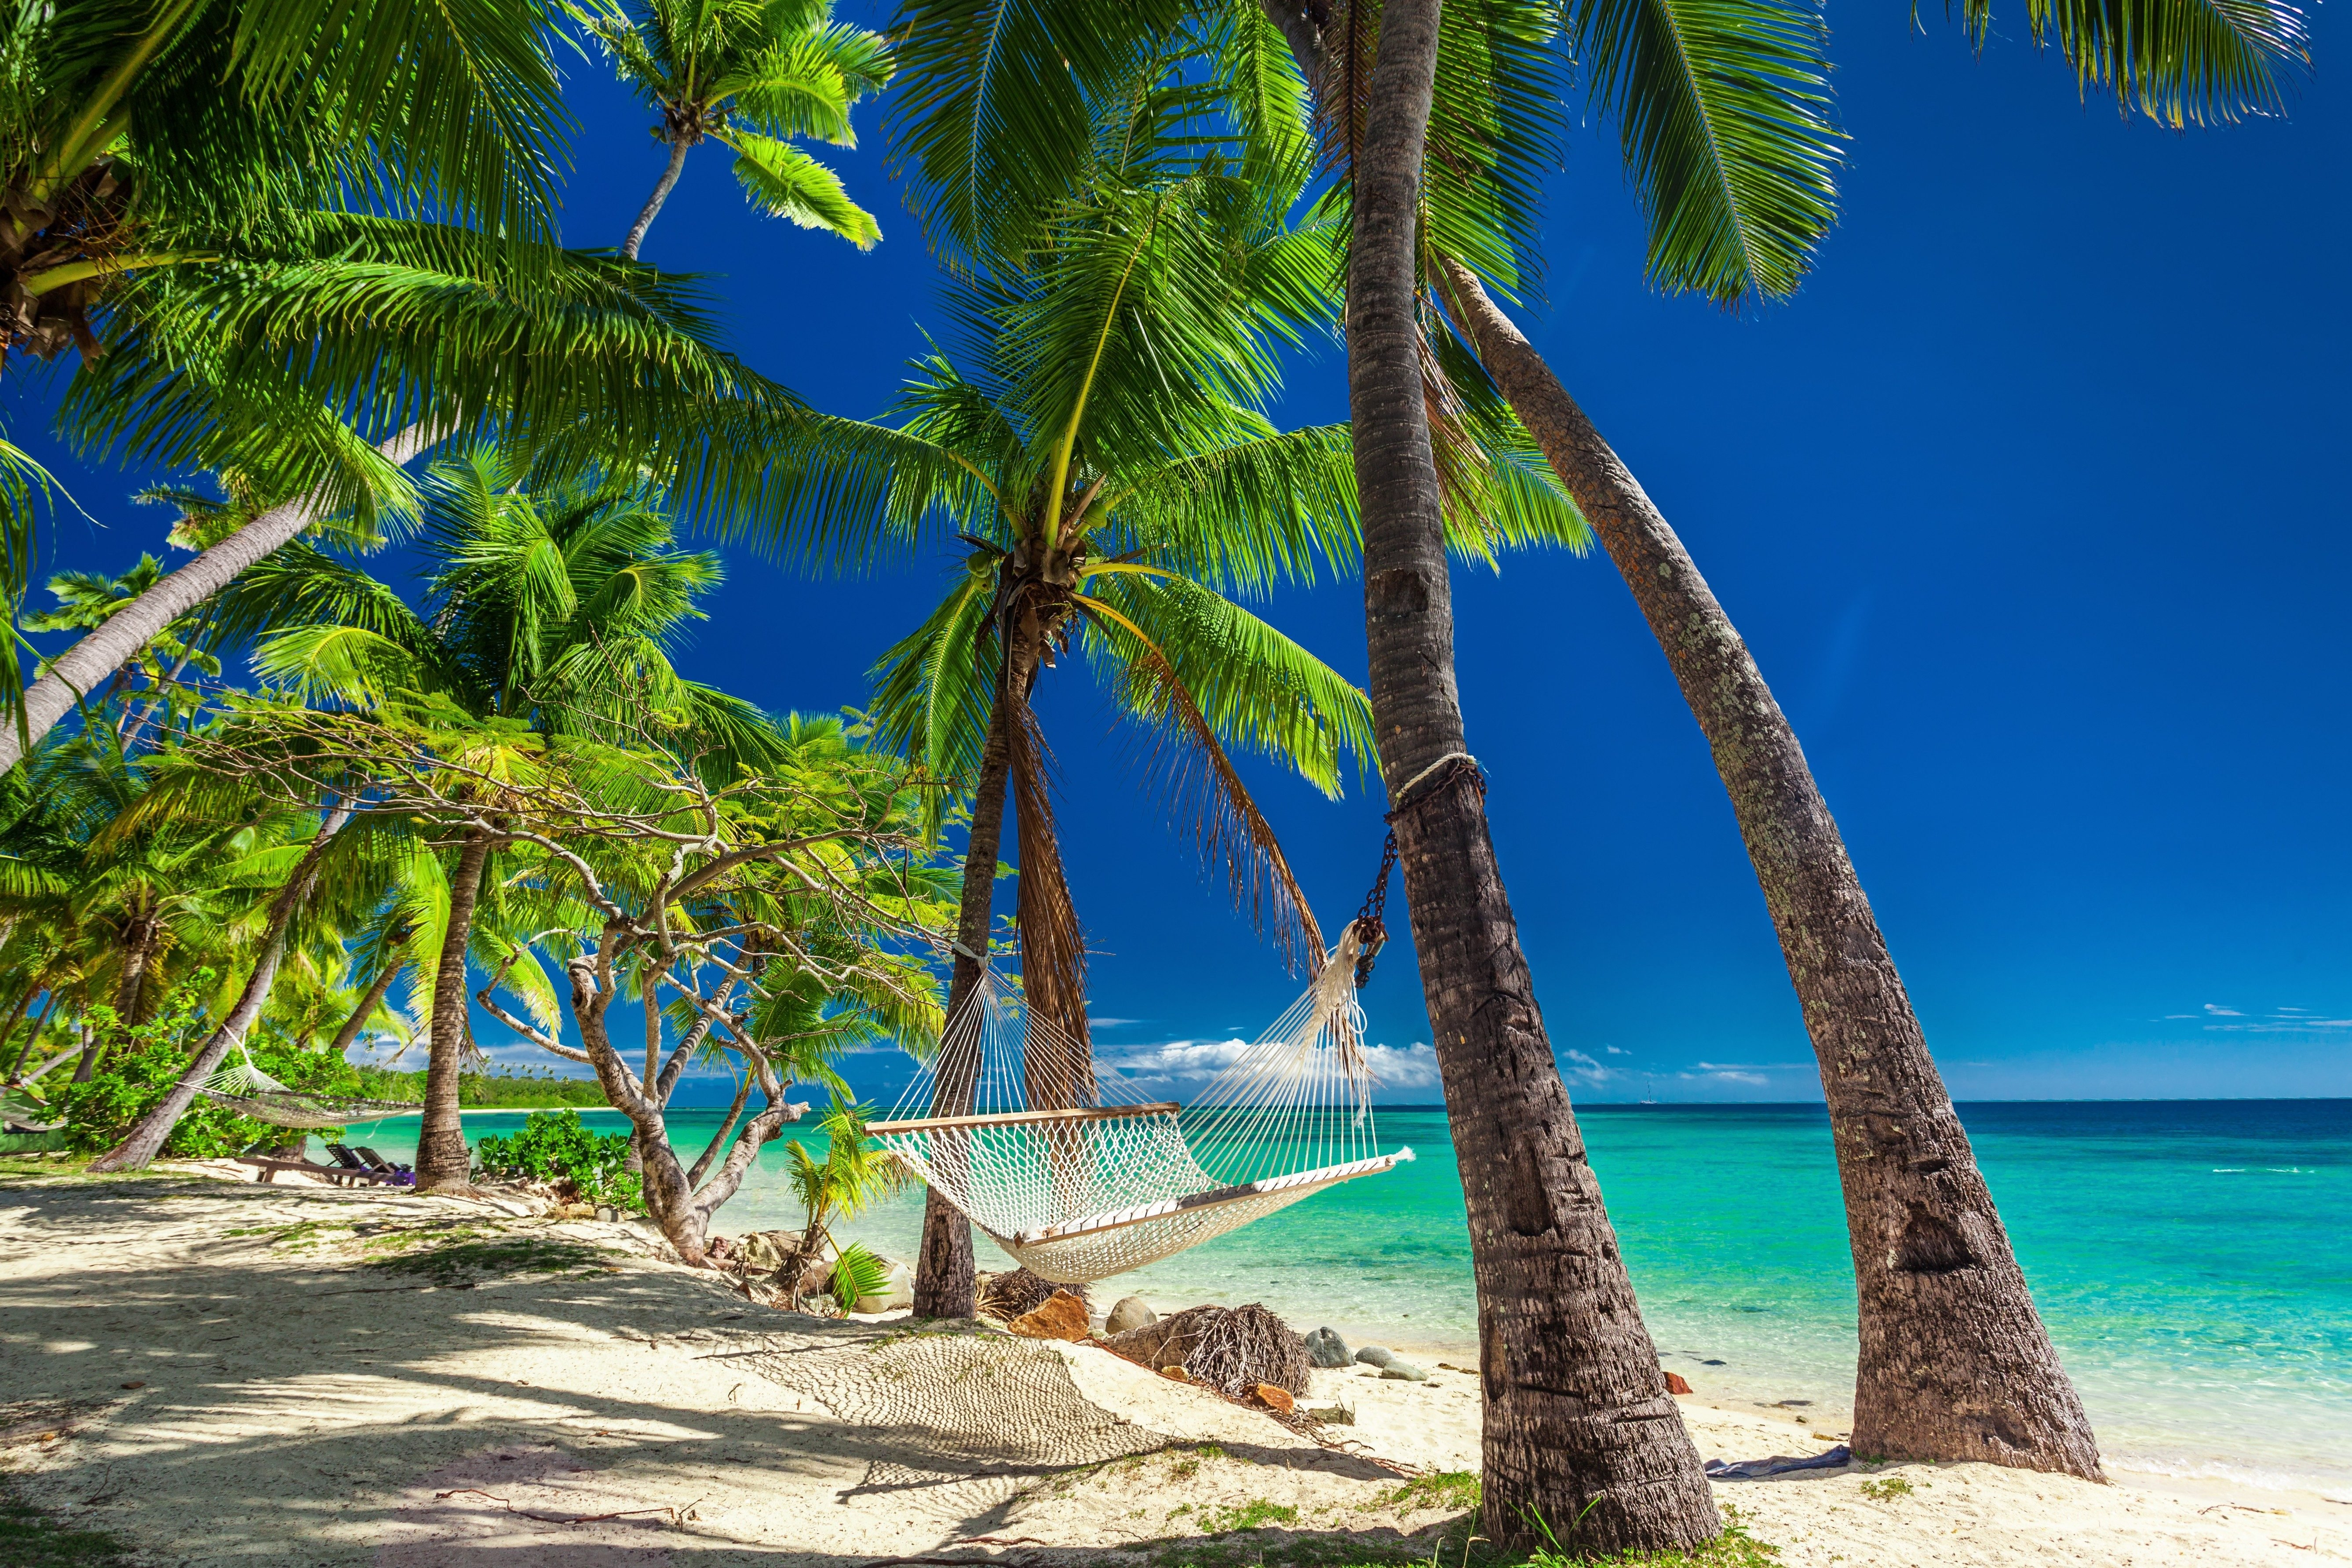 Empty hammock in the shade of palm trees on vibrant tropical Fiji Islands